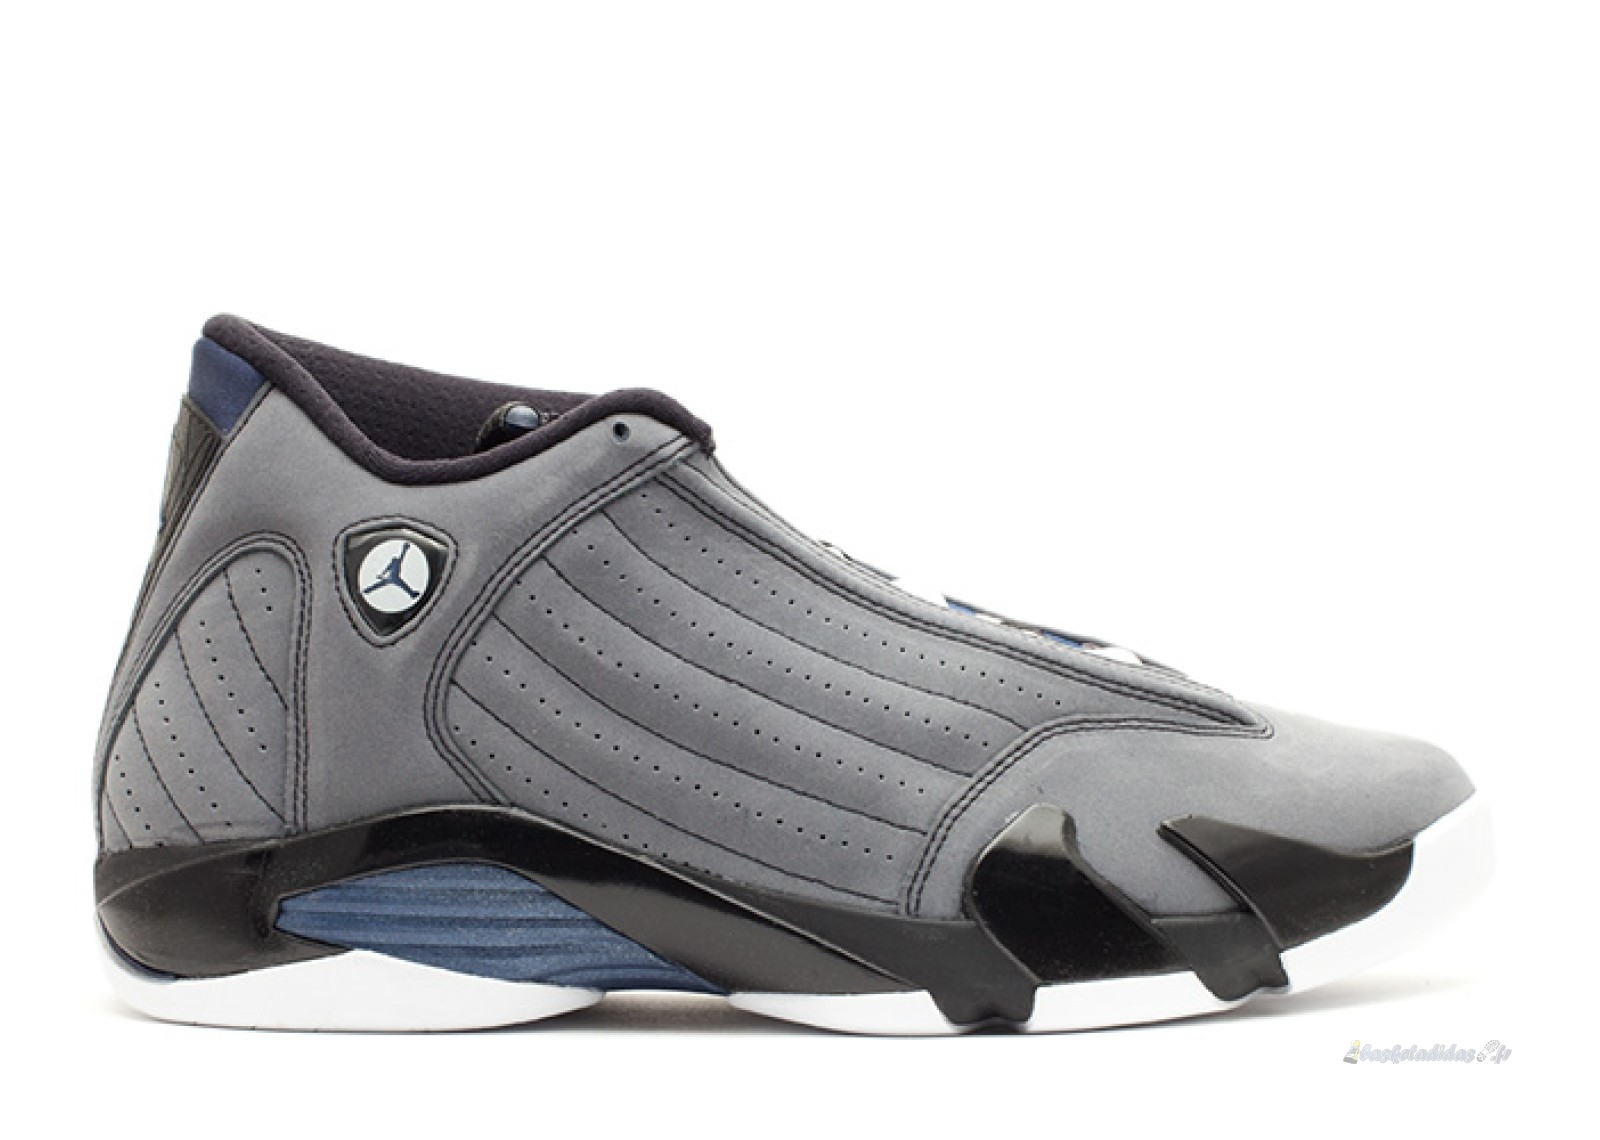 Chaussure de Basket Air Jordan 14 Retro Gris (311832-011)